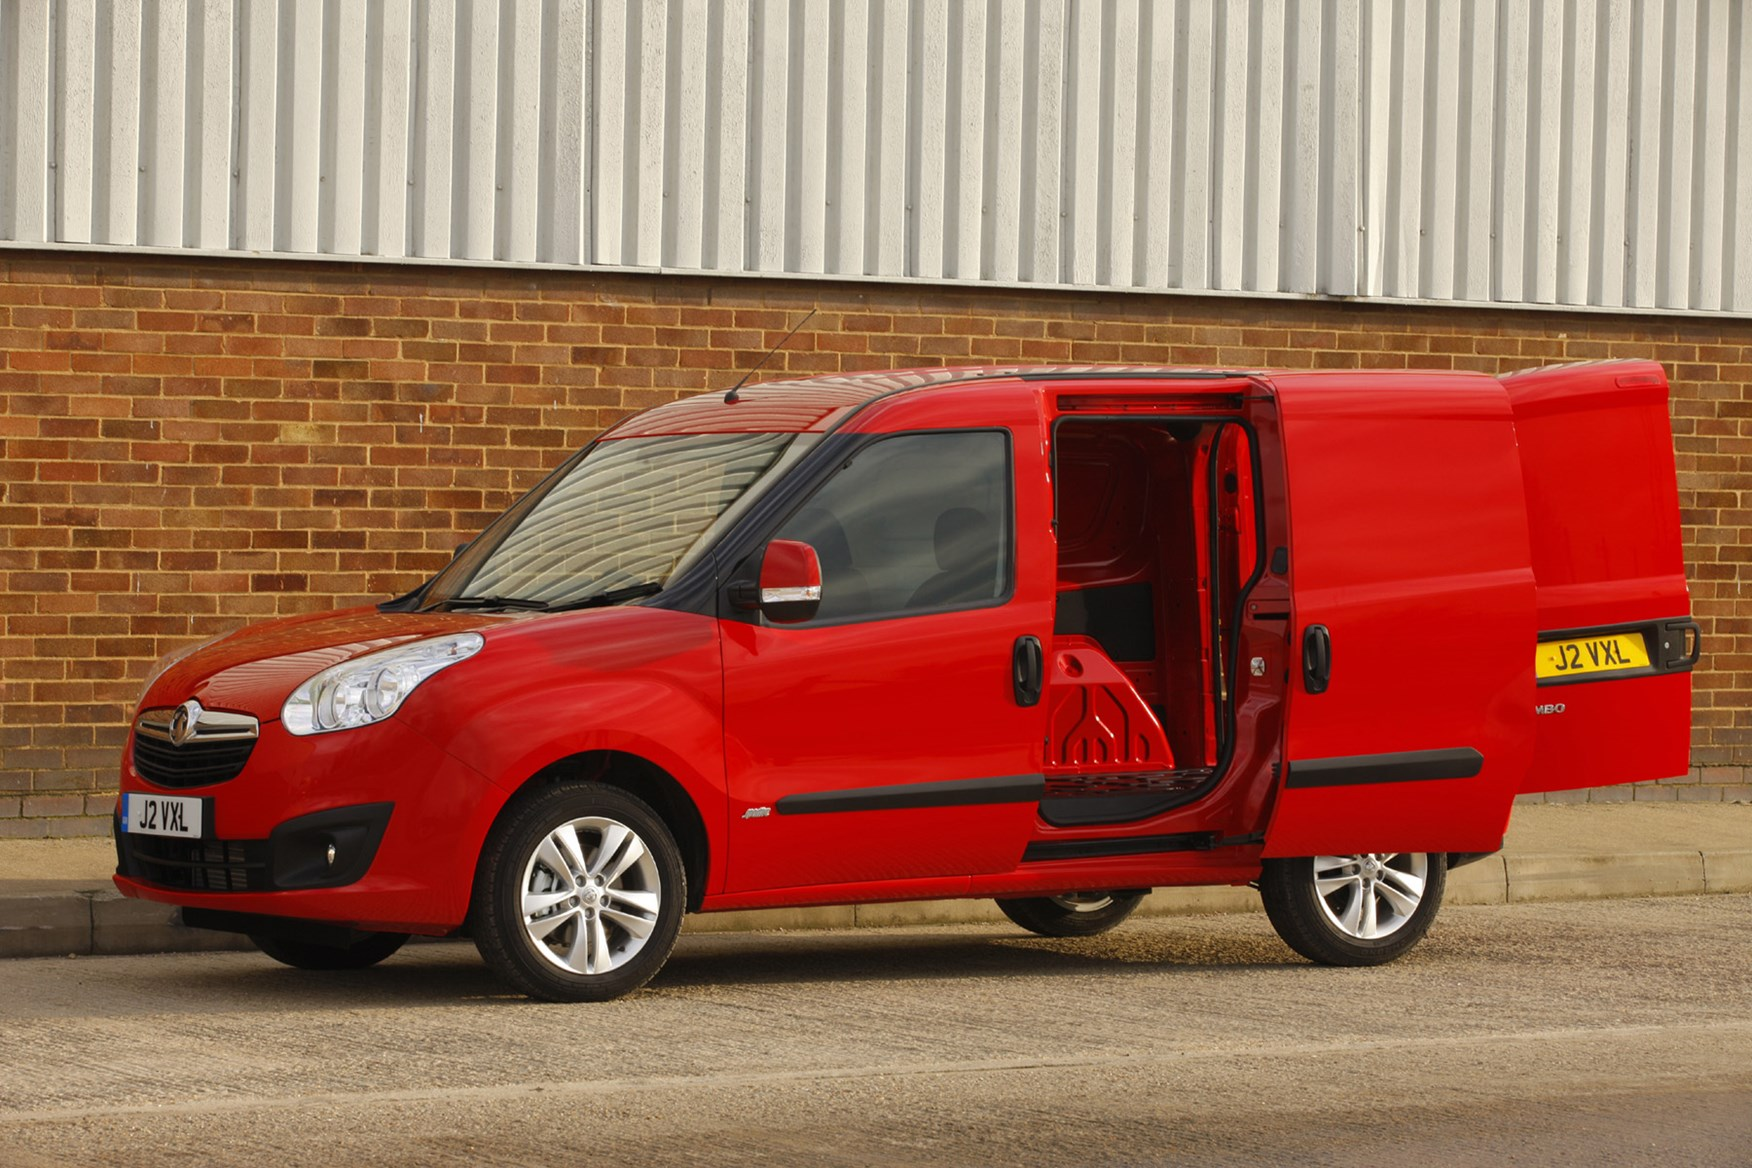 Vauxhall Combo full review on Parkers Vans - load area